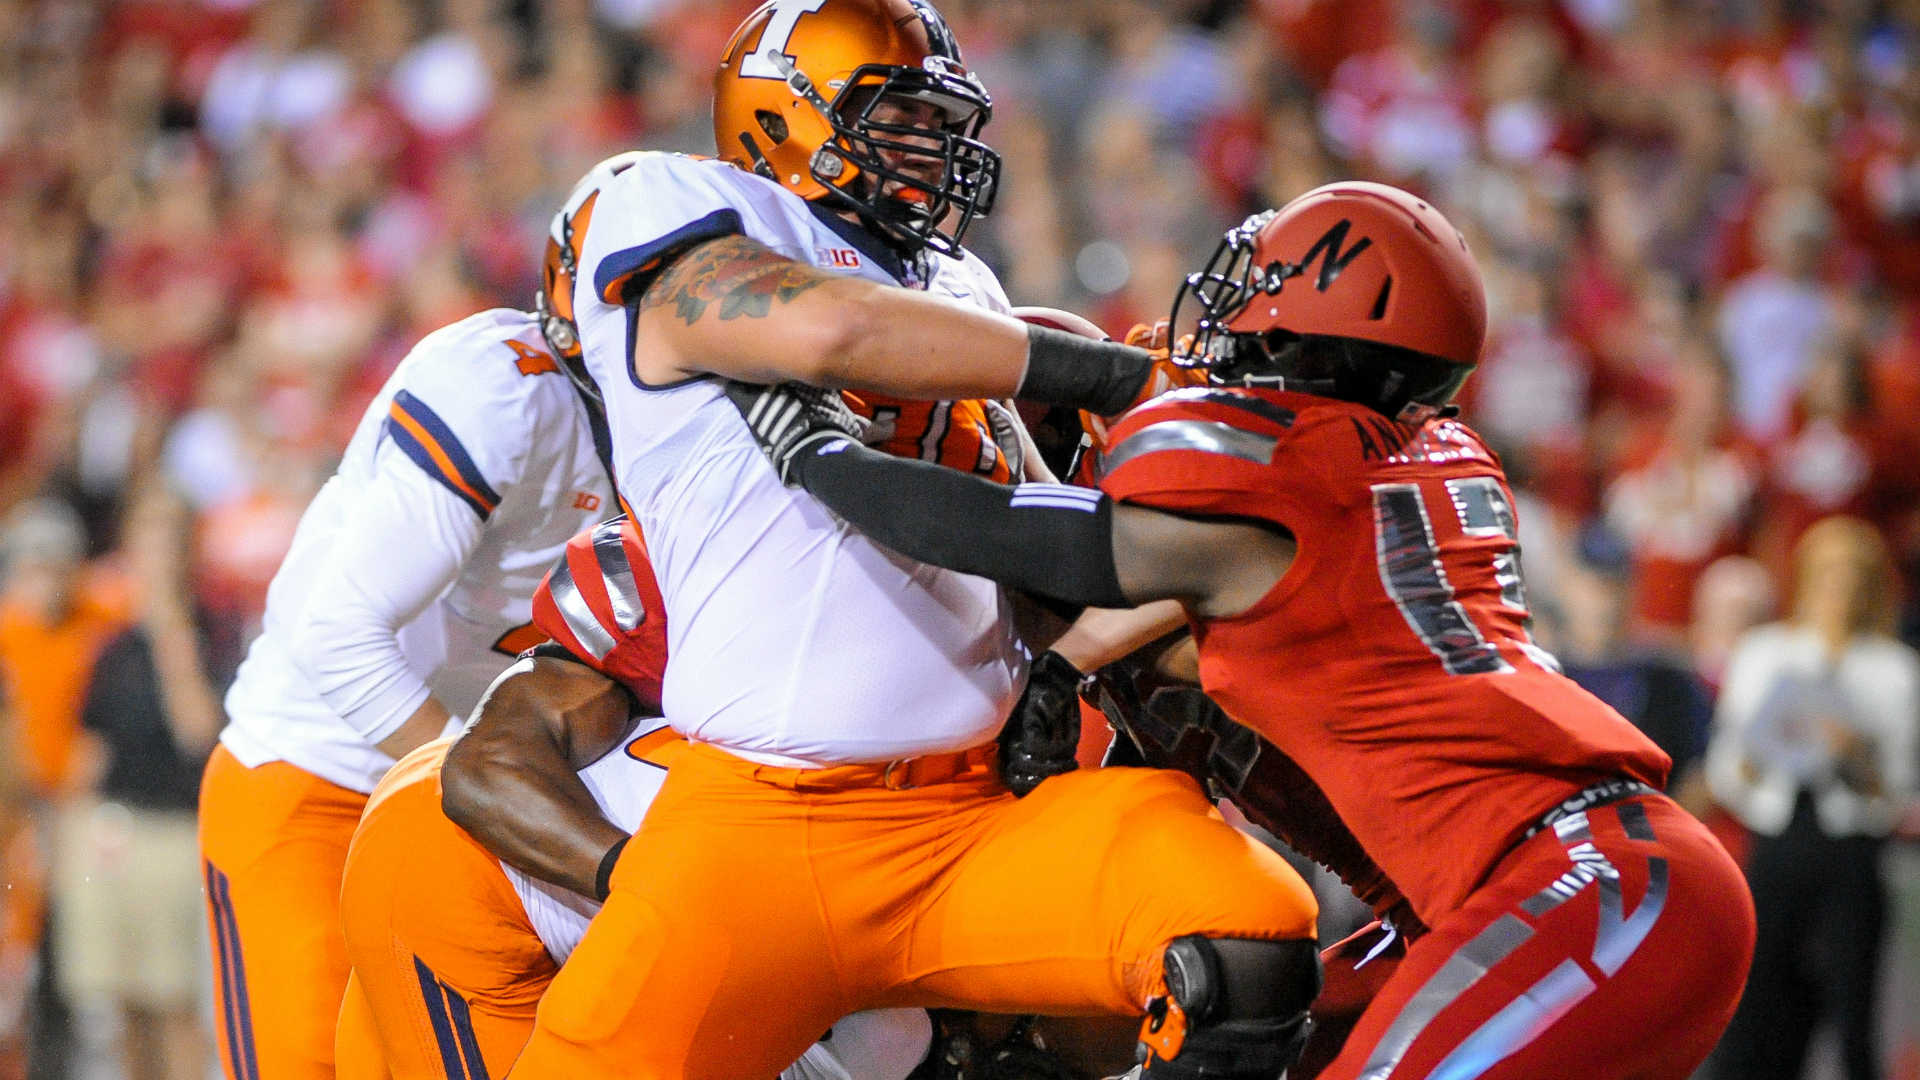 Illinois pays $250K to settle ex-lineman's injury claims